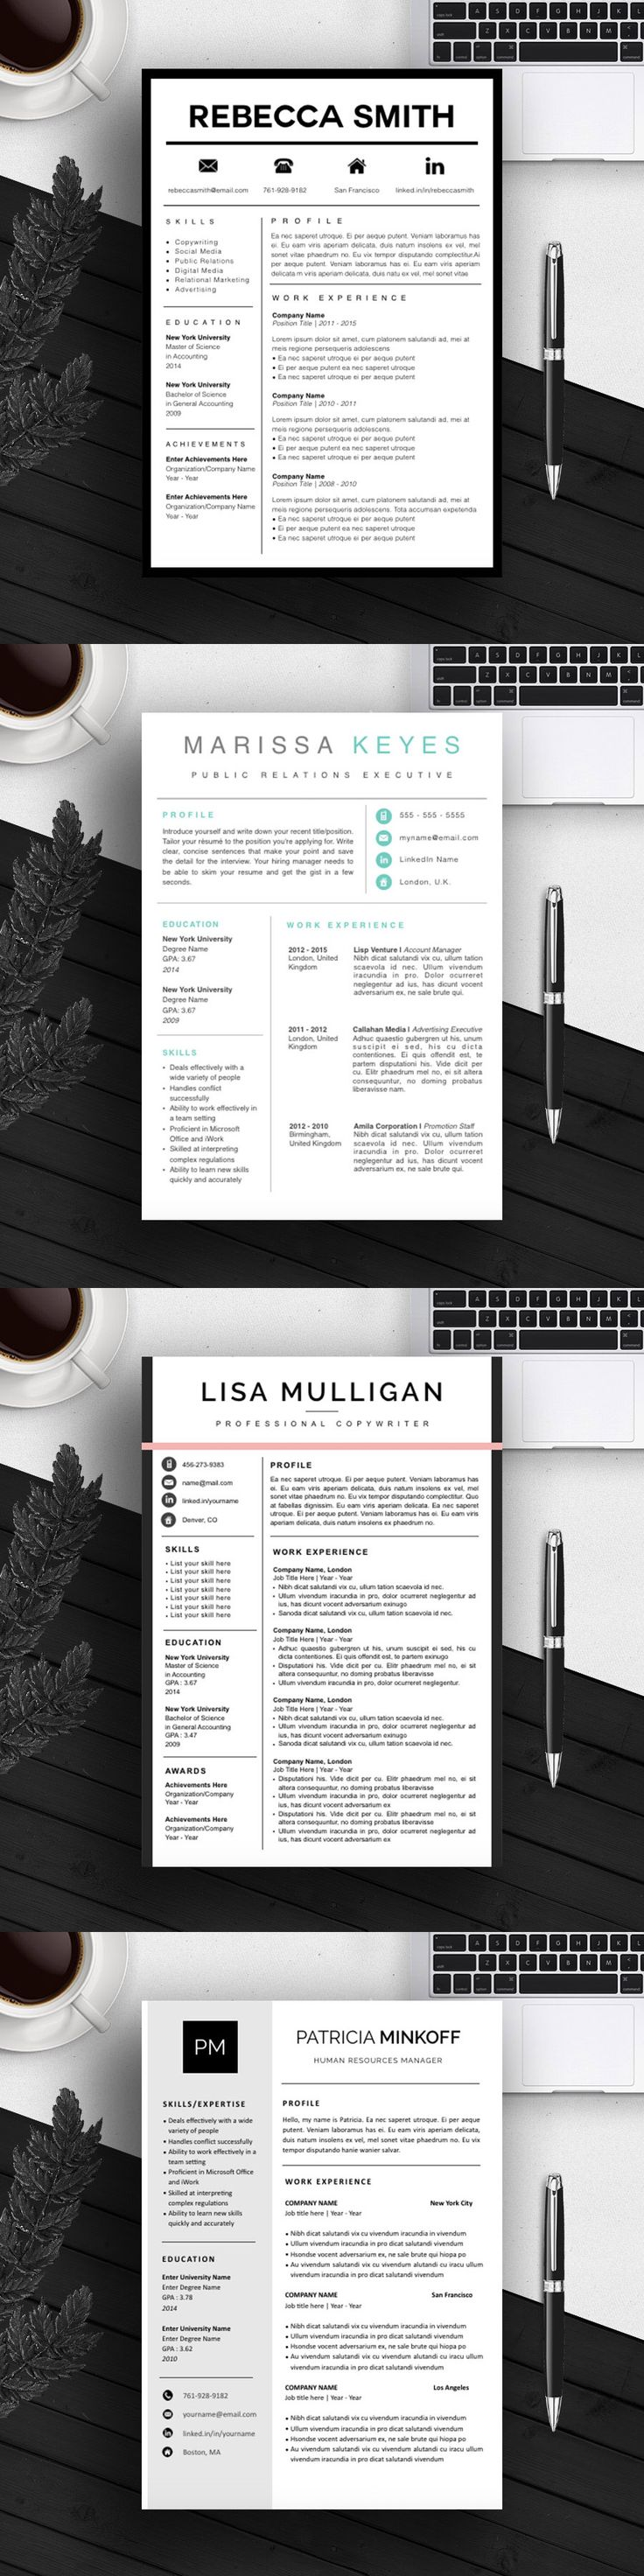 32 best images about resume templates on pinterest